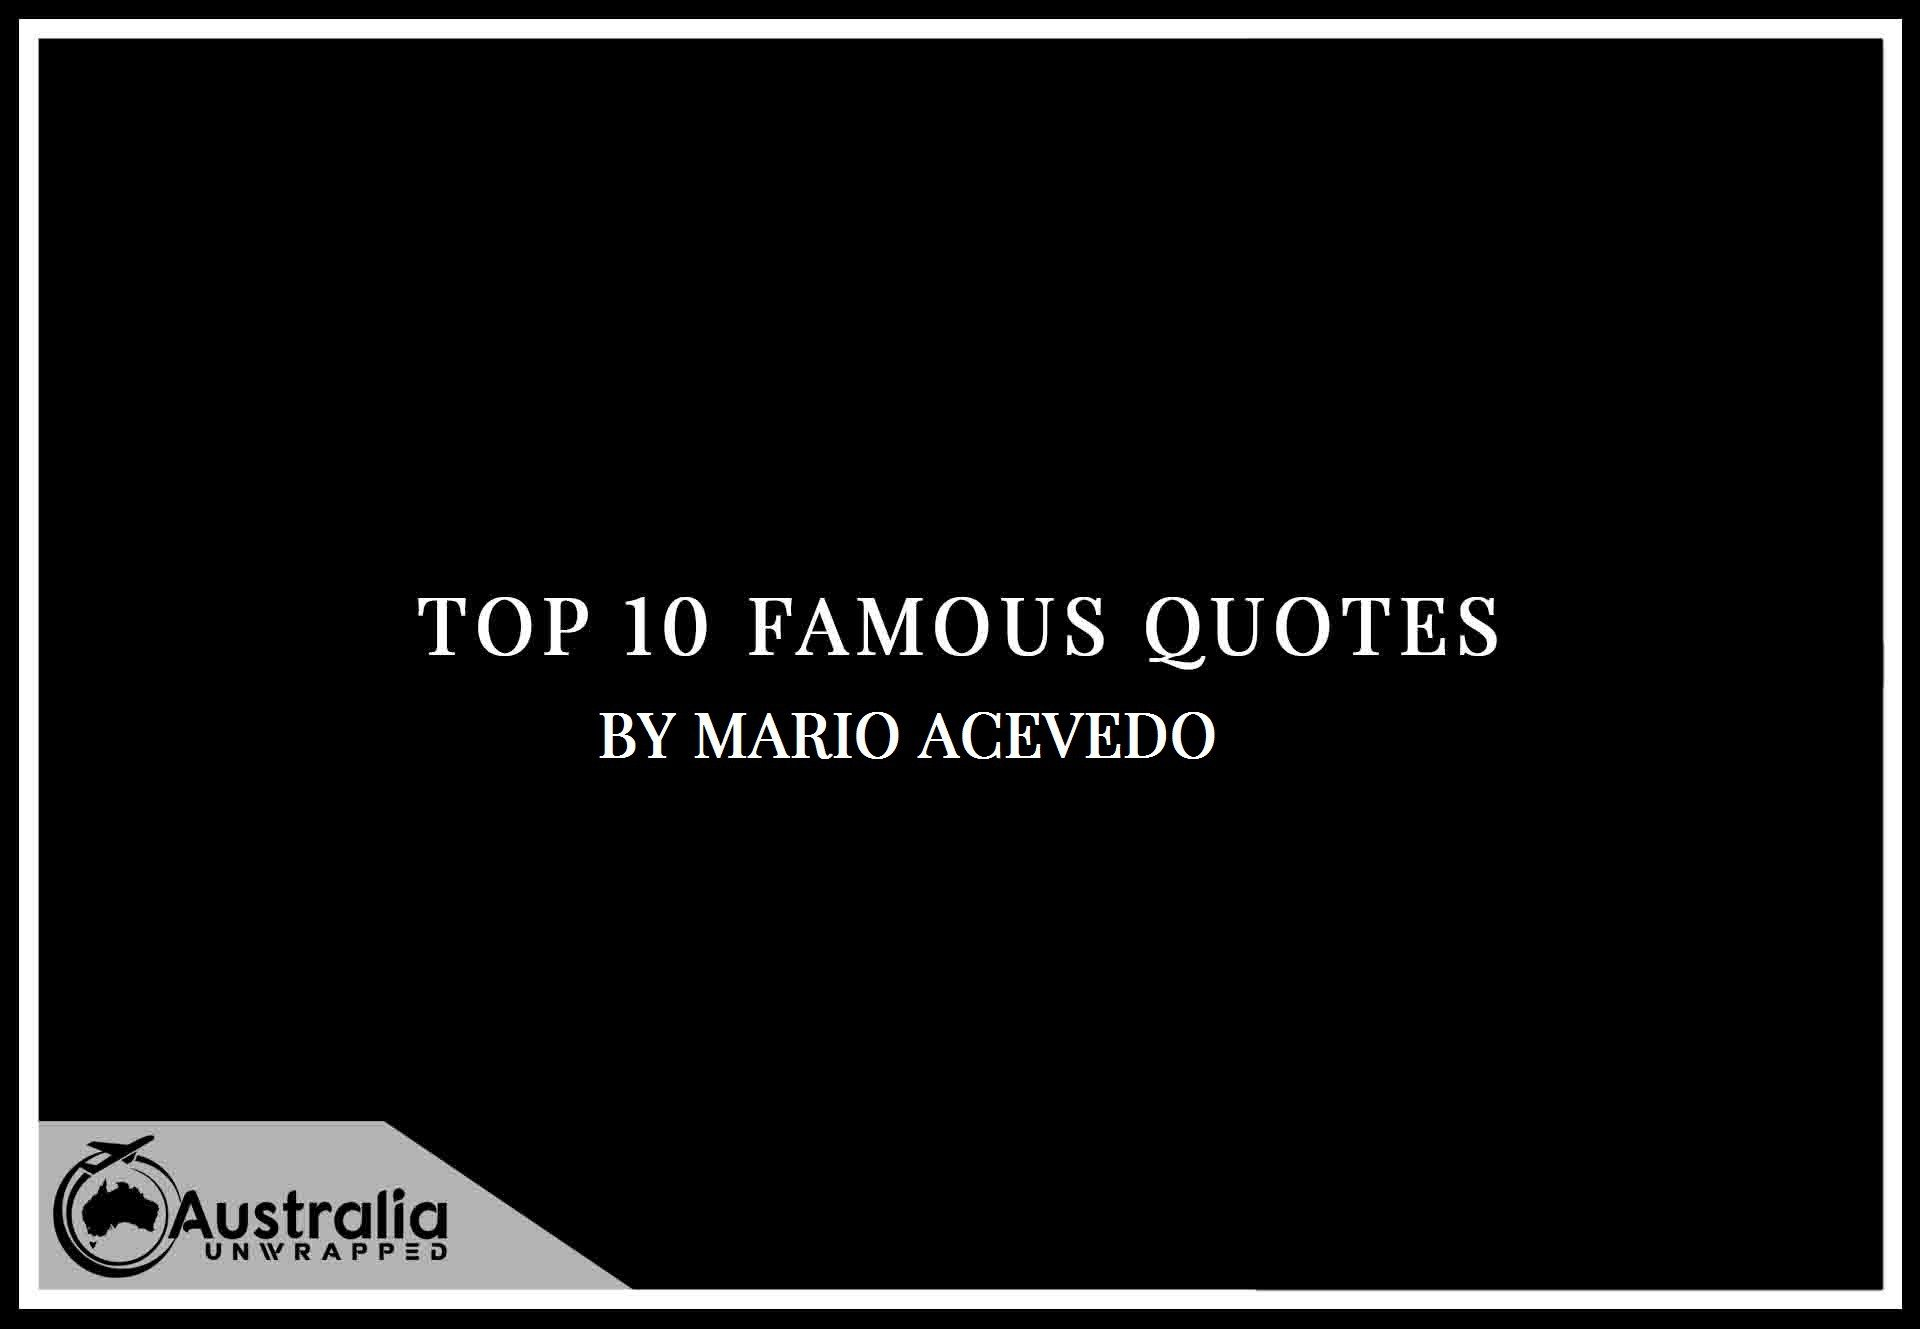 Mario Acevedo's Top 10 Popular and Famous Quotes